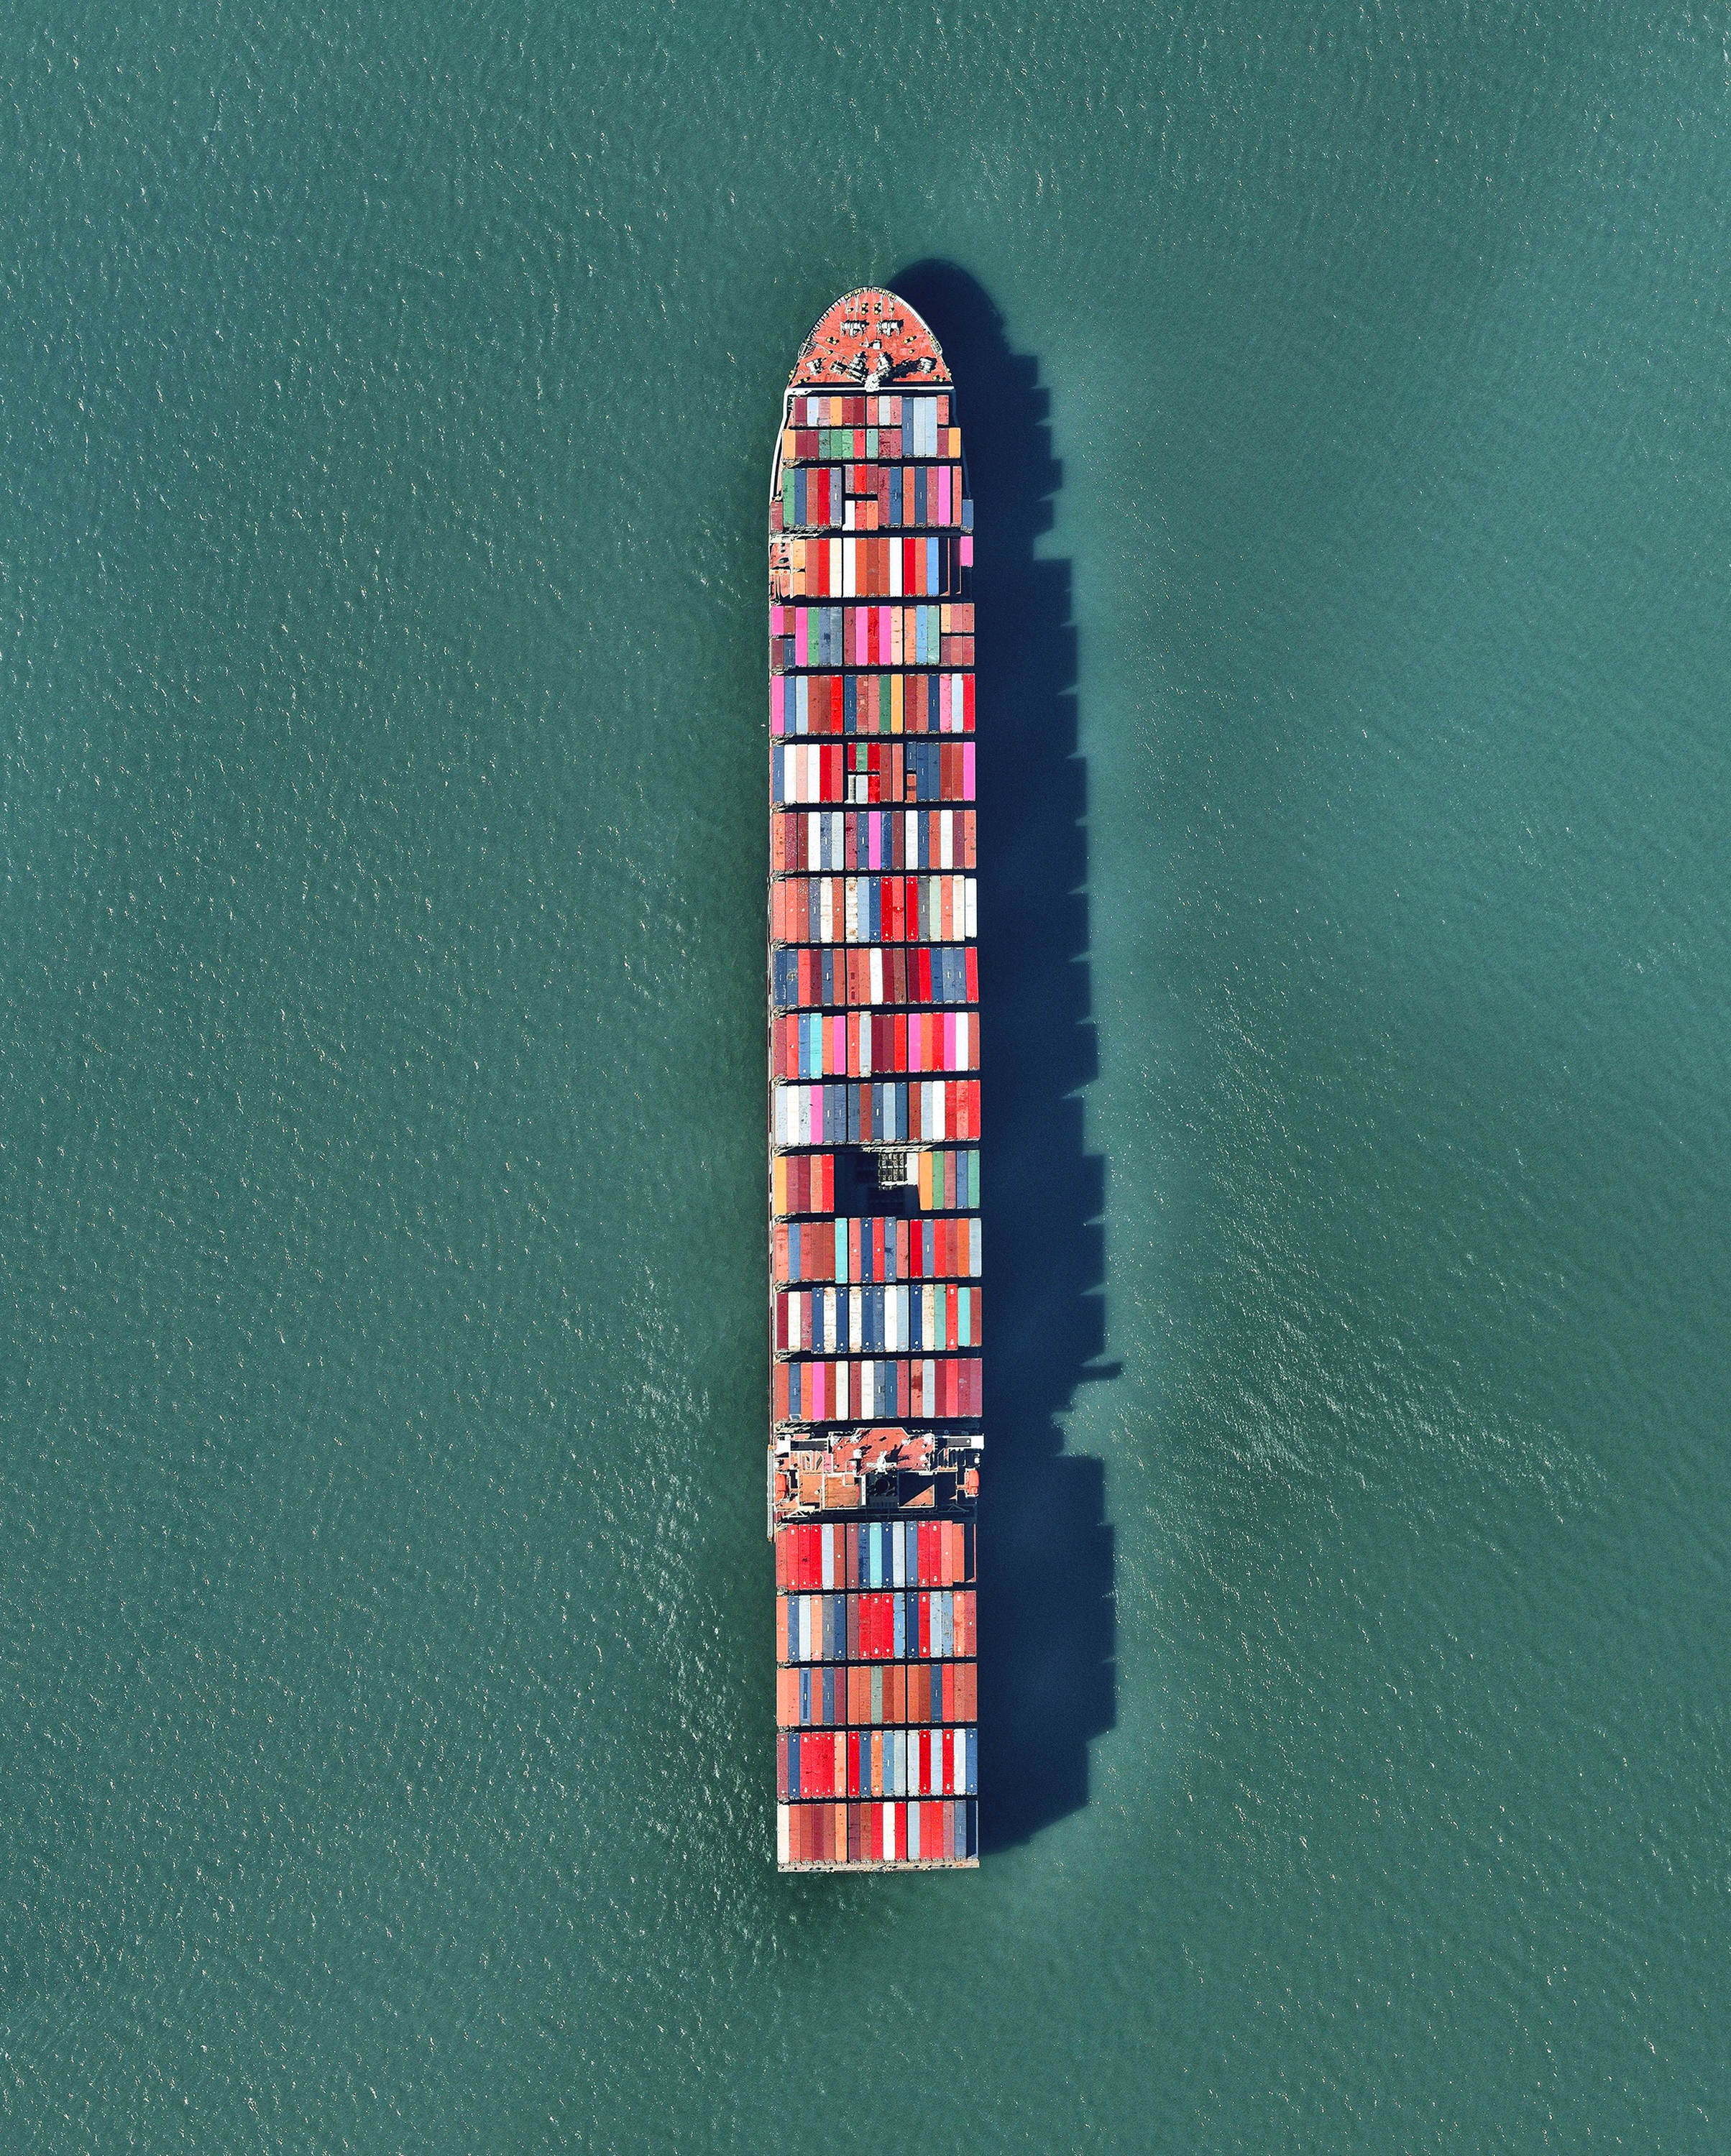 "A ship full of containerized cargo navigates San Francisco Bay, located between San Francisco and Oakland, California. Due to San Francisco's limited real estate, Oakland has served as the primary Bay Area port since the 1960s. The Port of San Francisco handled no containerized cargo in 2017, whereas the Port of Oakland had a throughput of nearly 2.5 million twenty-foot equivalent units (TEUs) that year.  37°46'01.3""N, 122°20'58.3""W  Source imagery: Nearmap"